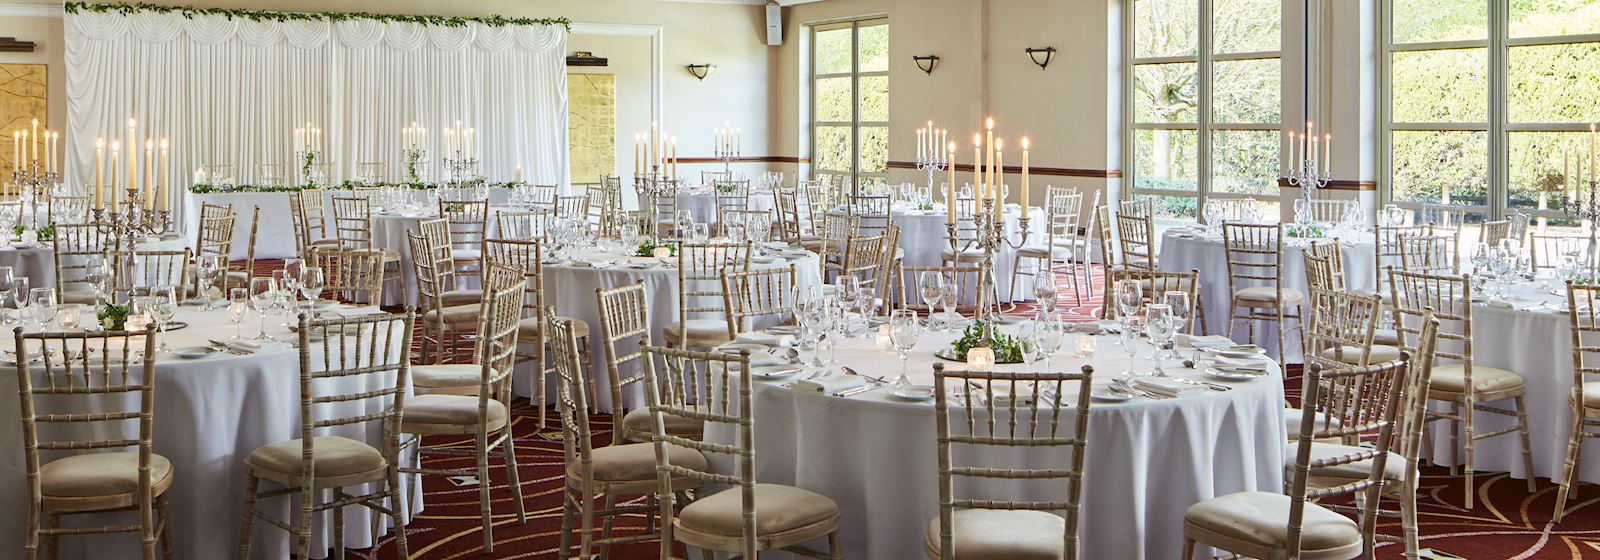 Huntingdon Marriott Hotel Weddings